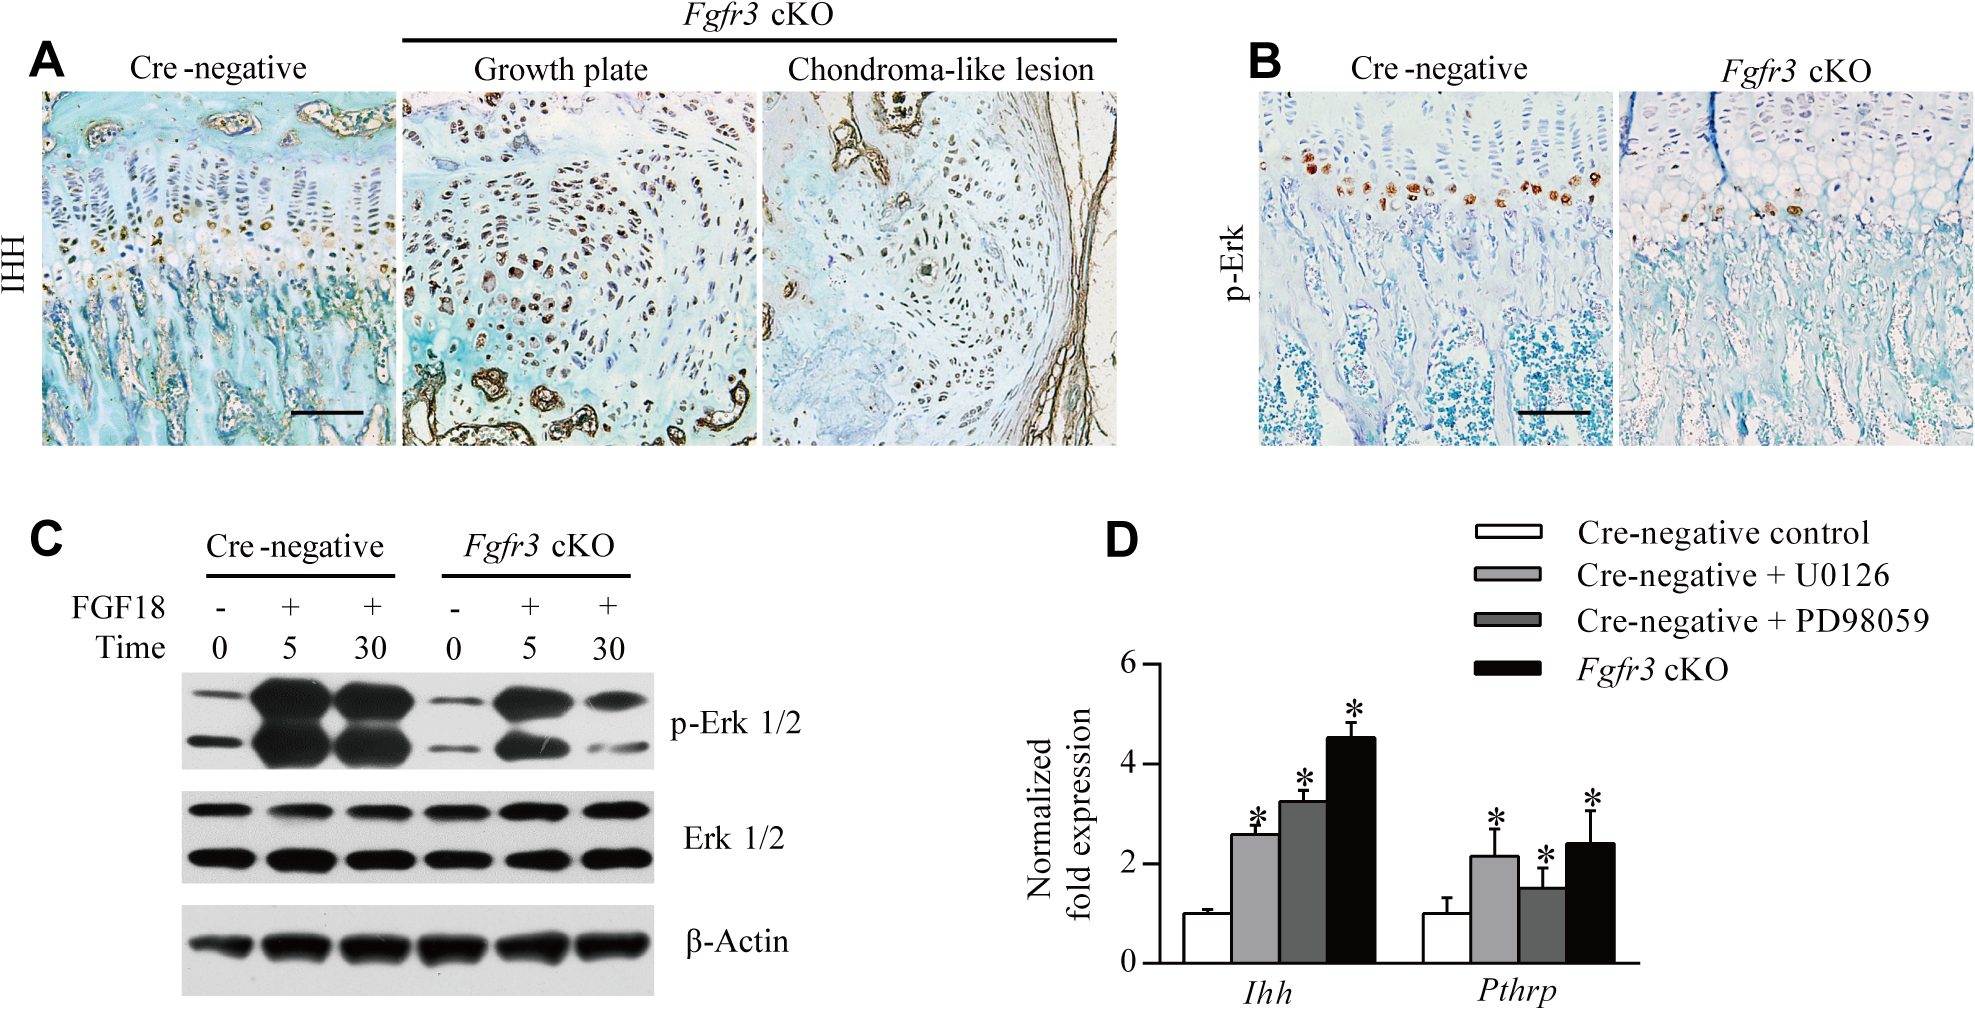 Loss of <i>Fgfr3</i> suppresses ERK activation but enhances IHH expression.